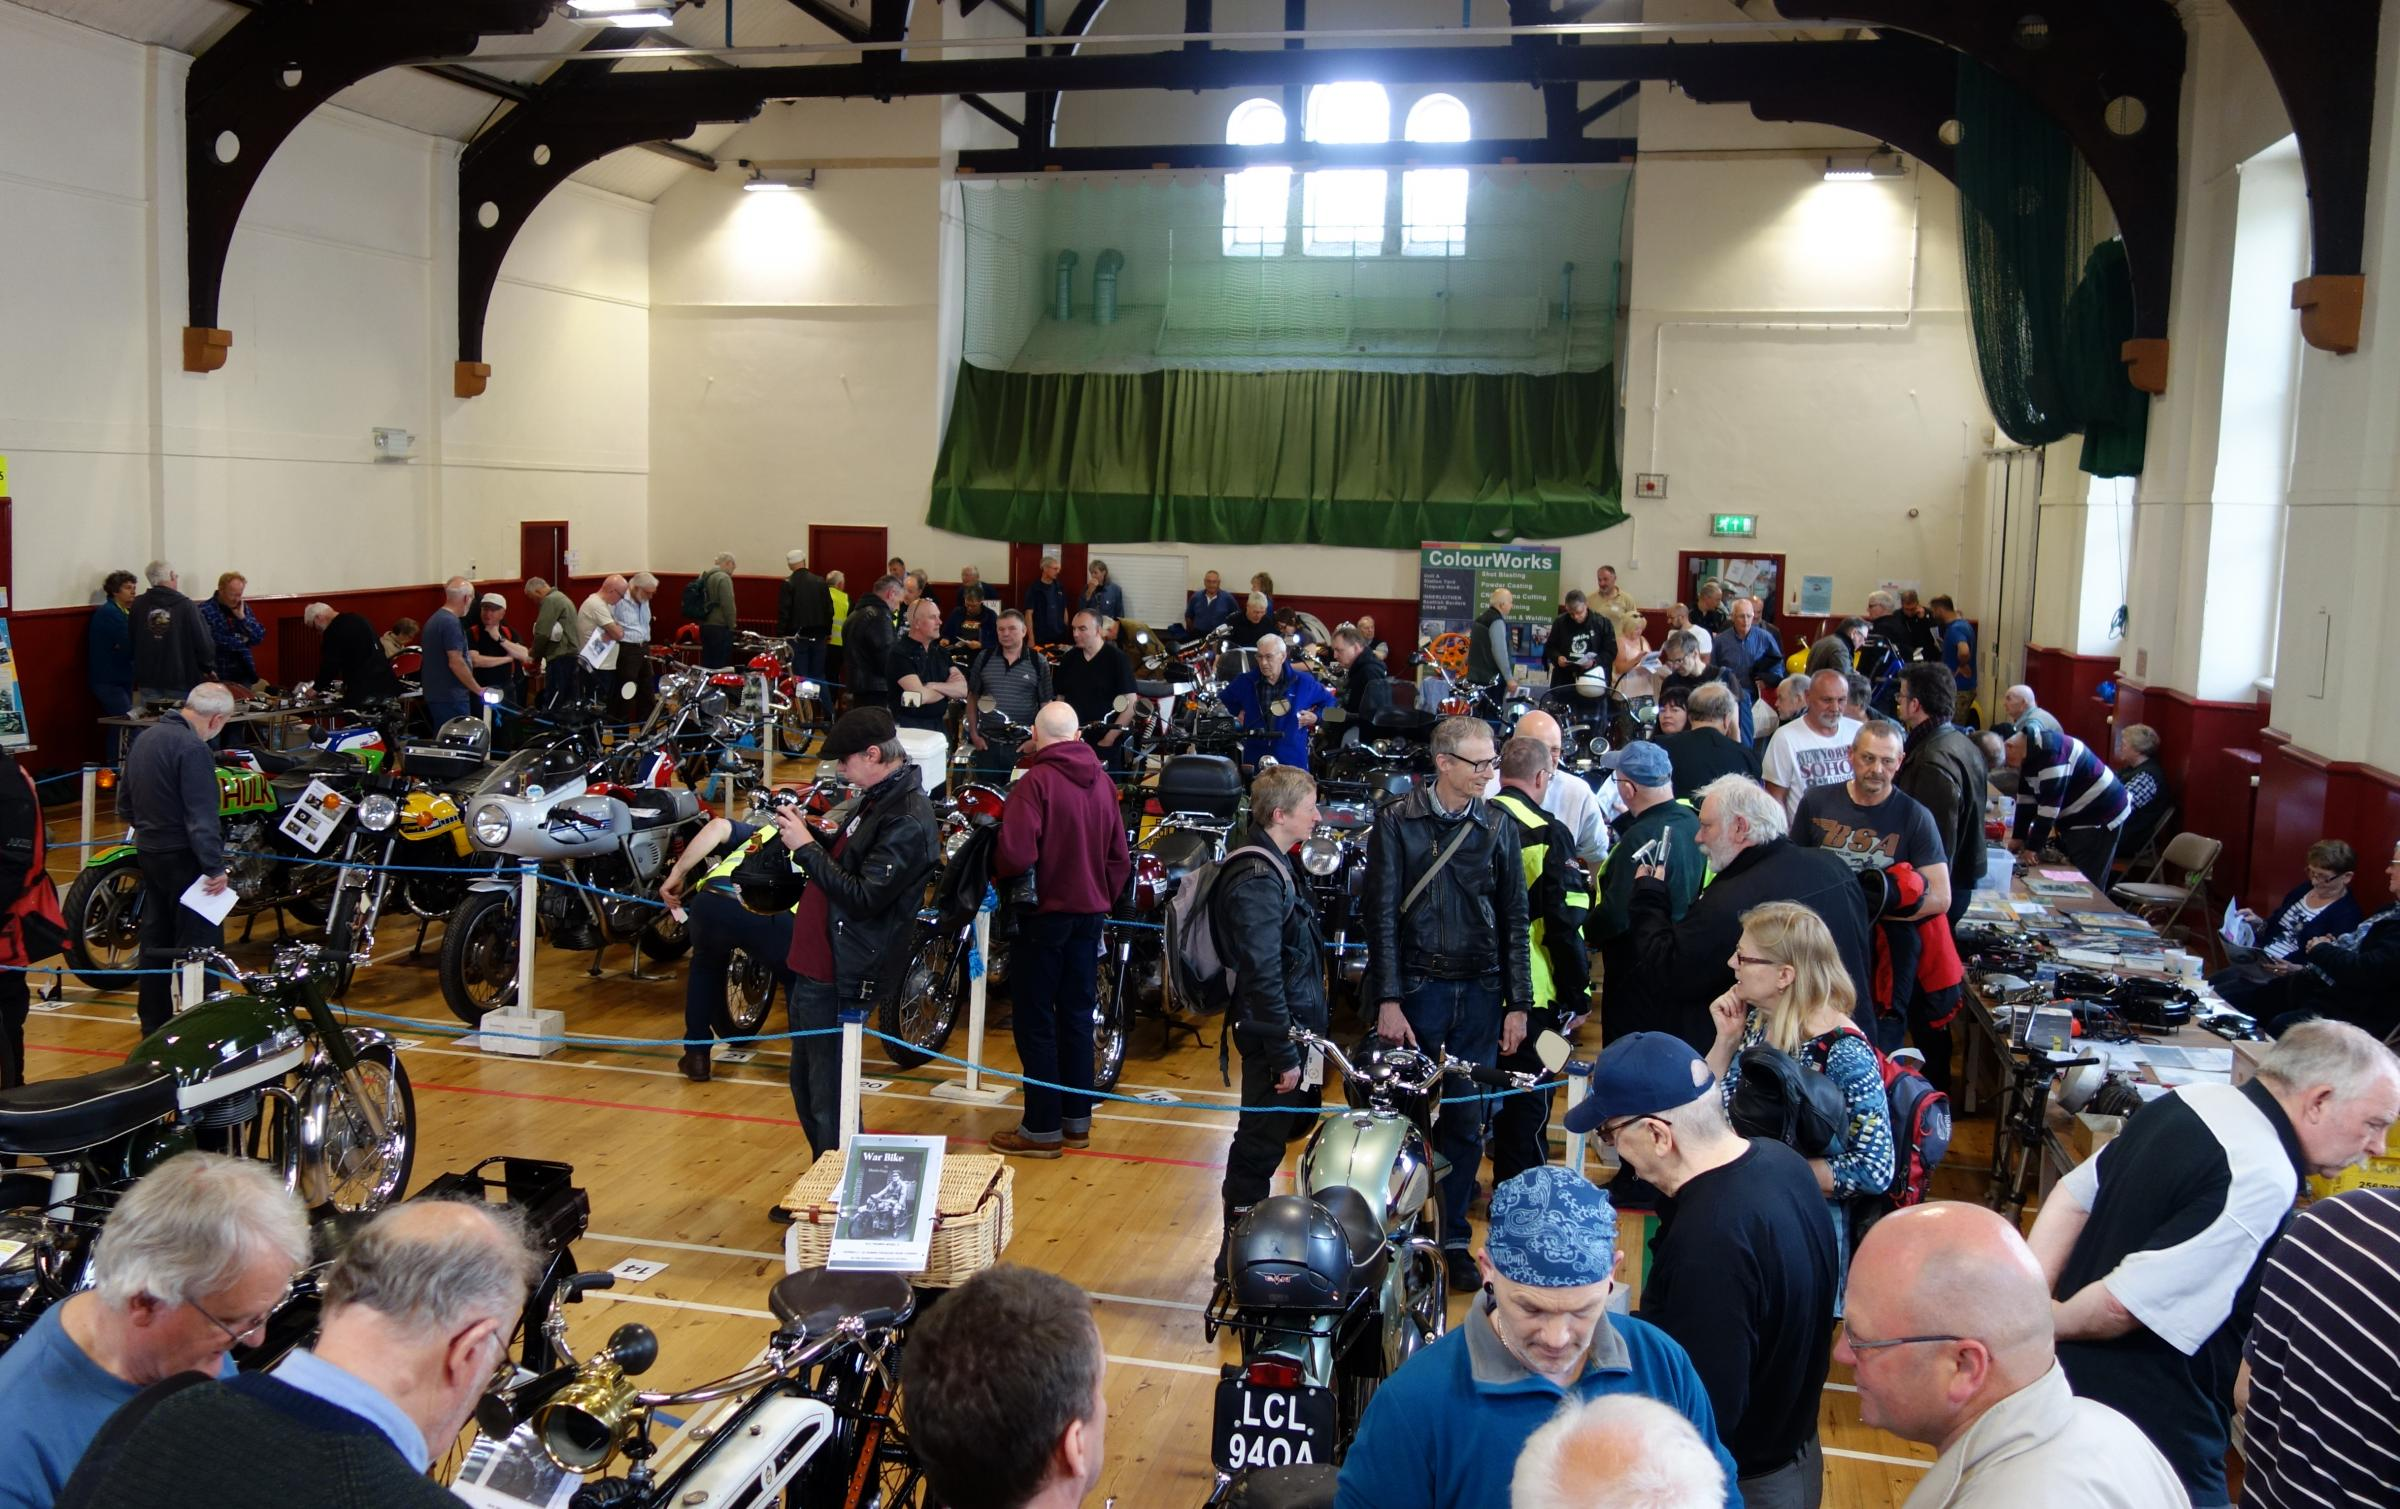 The Lothian and Borders Classic and Vintage Motorcycle Club Show